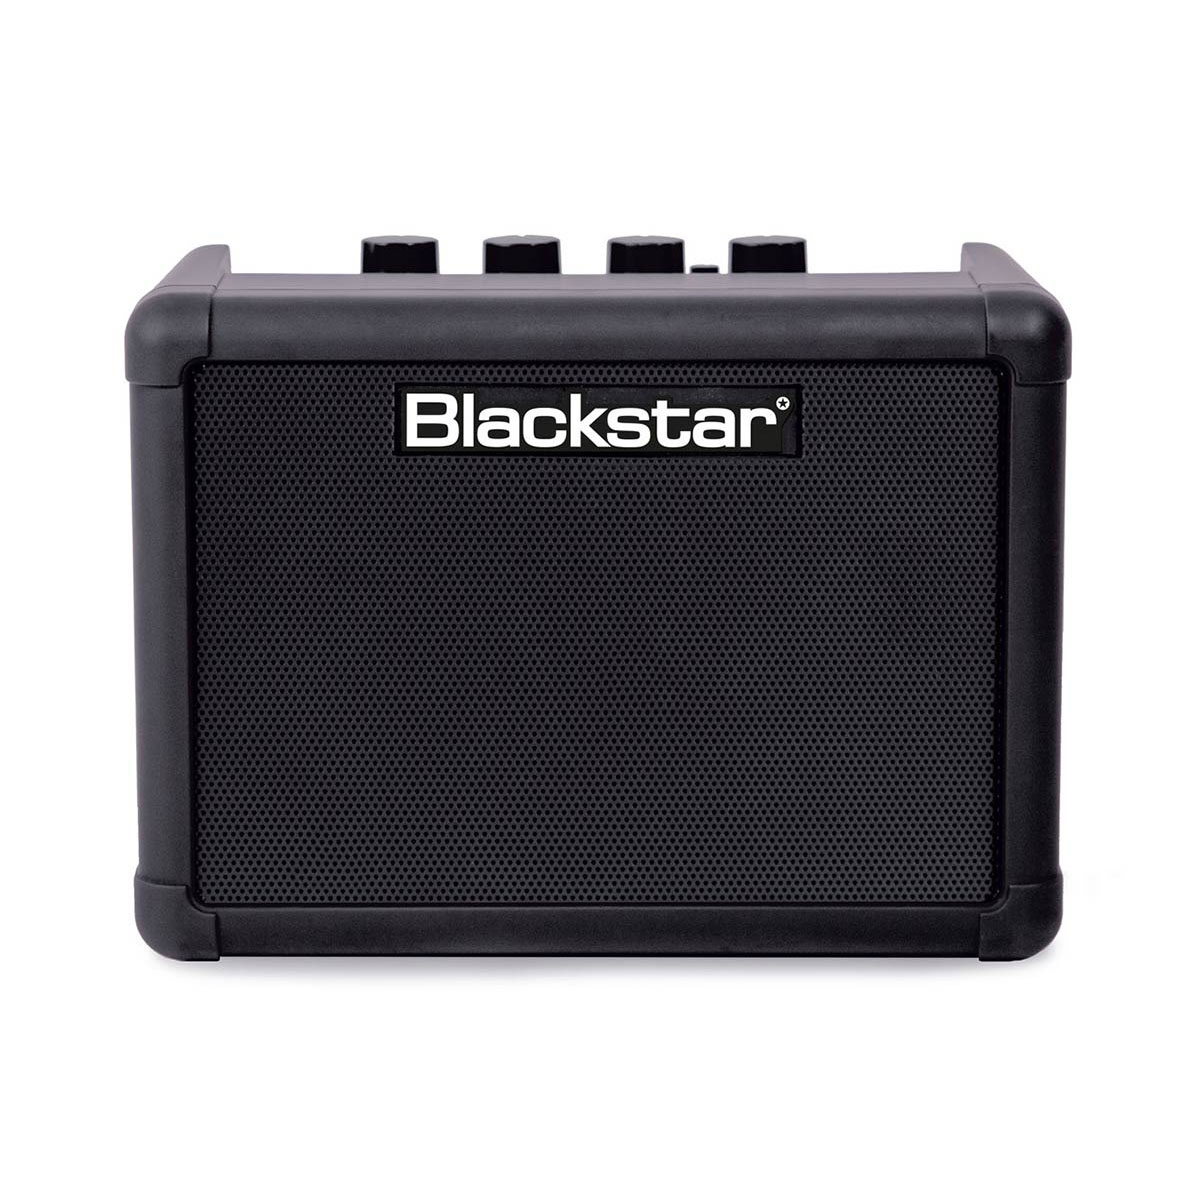 Blackstar / FLY3 Bluetooth 3Watt Mini Amp ブラックスター【御茶ノ水本店】